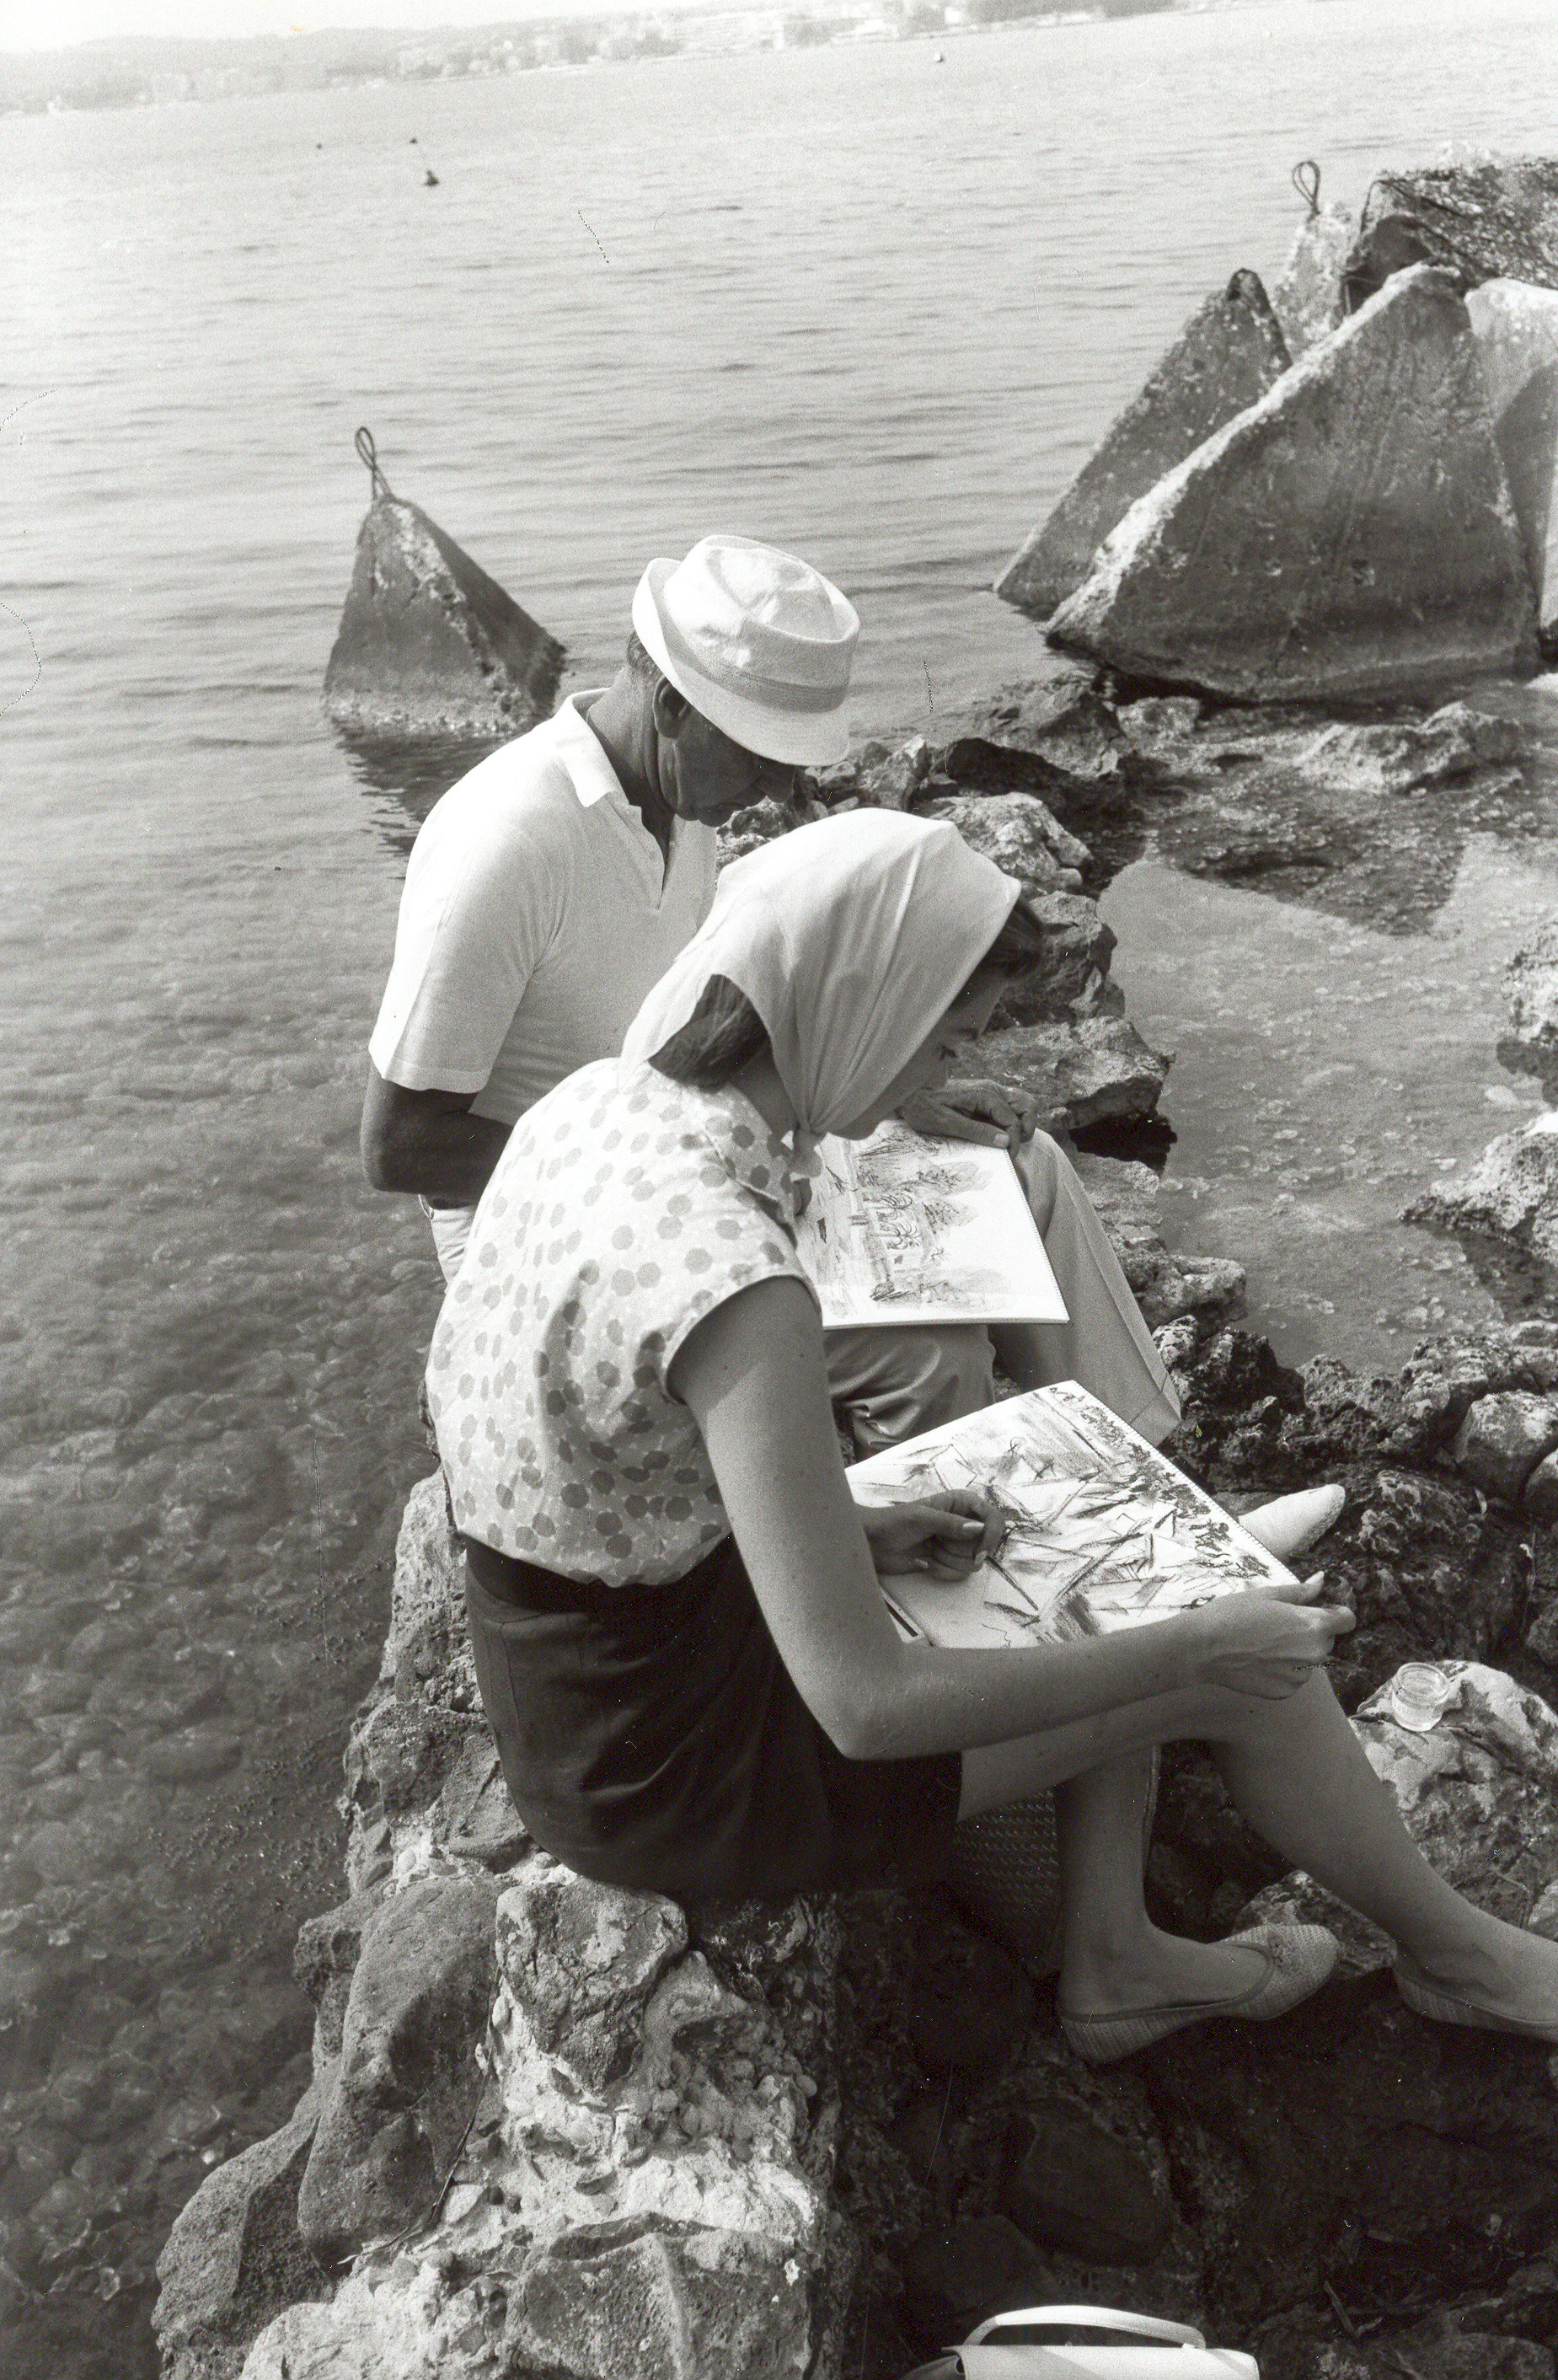 - Sketching with my father on the rocks near Antibes in the South of France. I loved when we were both able to sit together and draw.